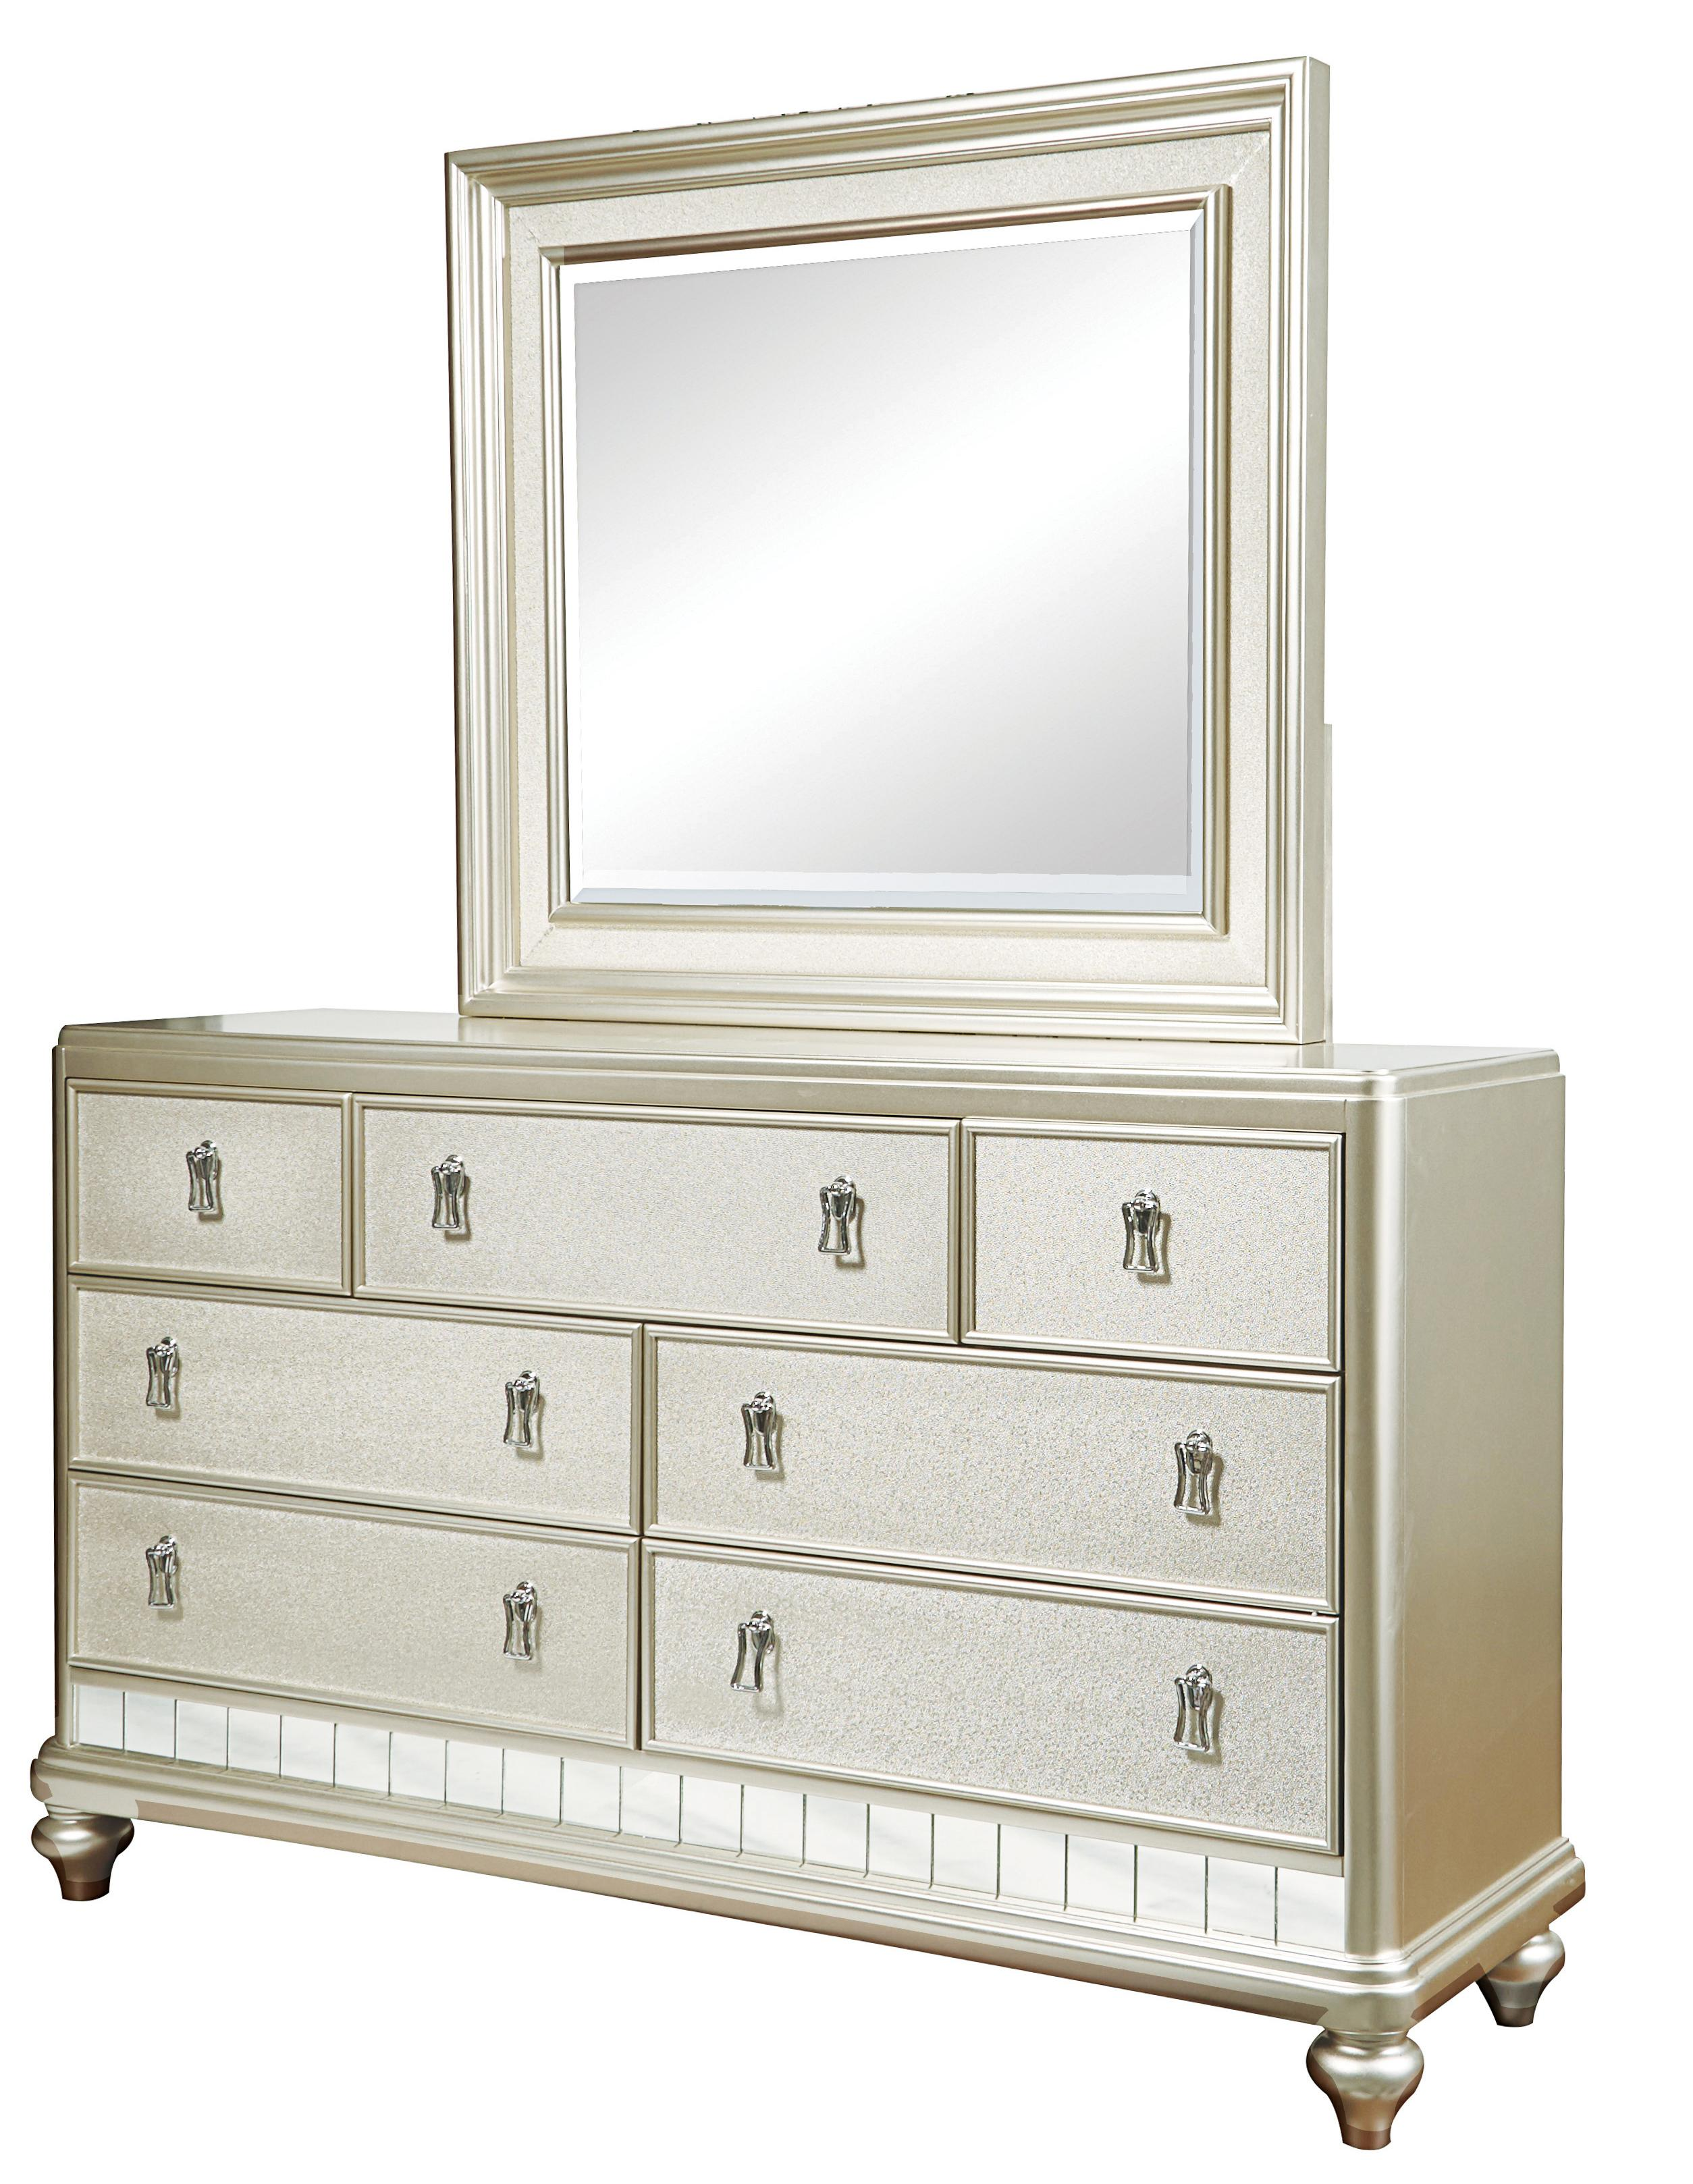 mirror number contemporary and products hooker furniture transcend chest drawer dresser bedroom item